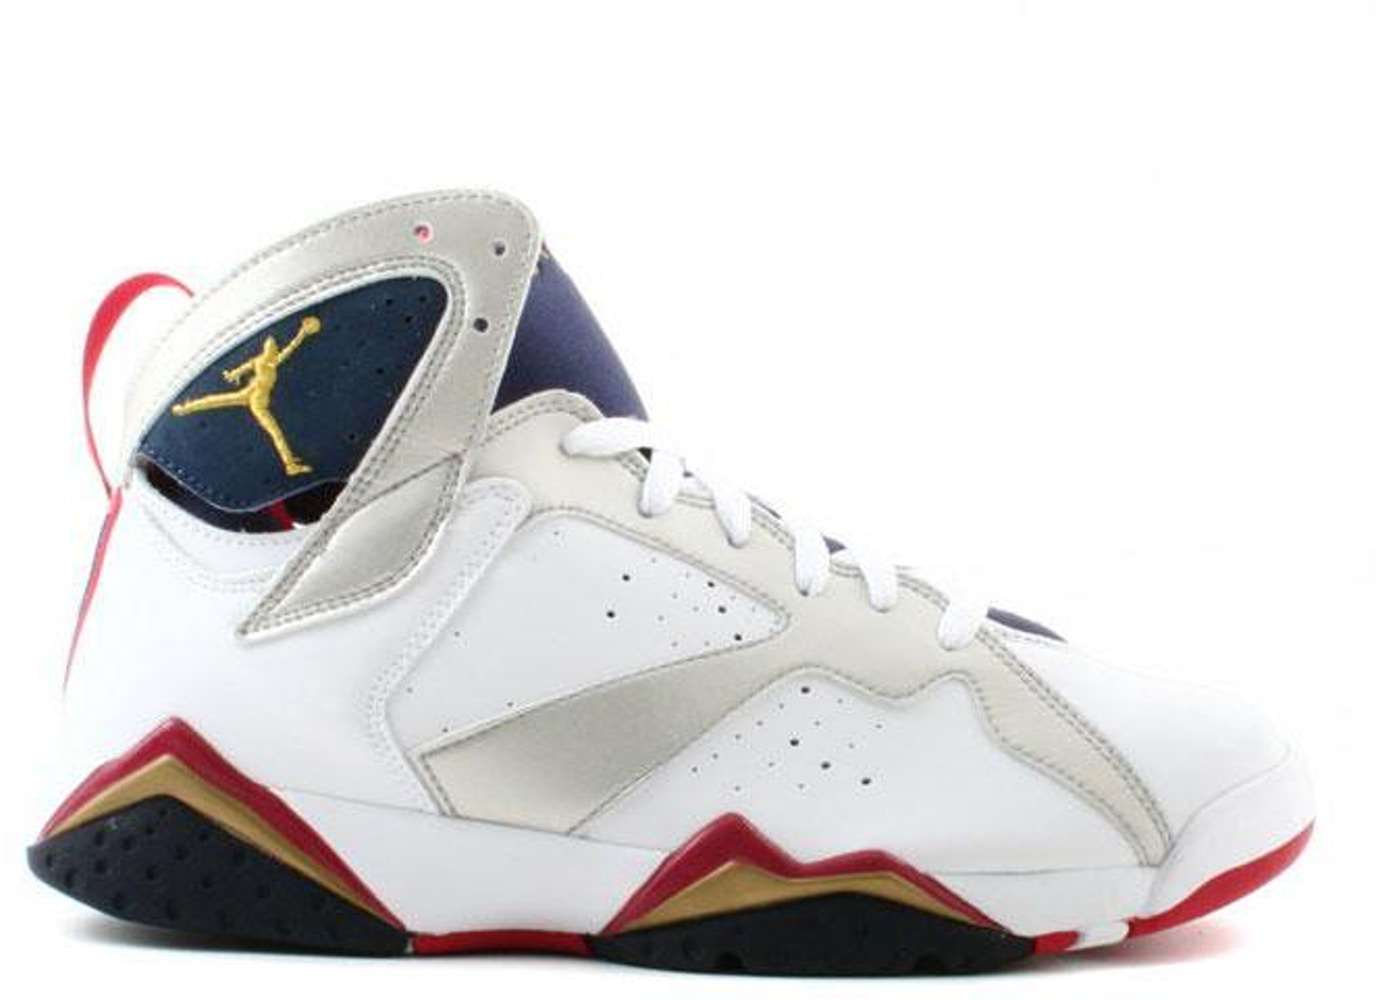 timeless design e15de 87c88 Jordan 7 Retro Olympic (2004)